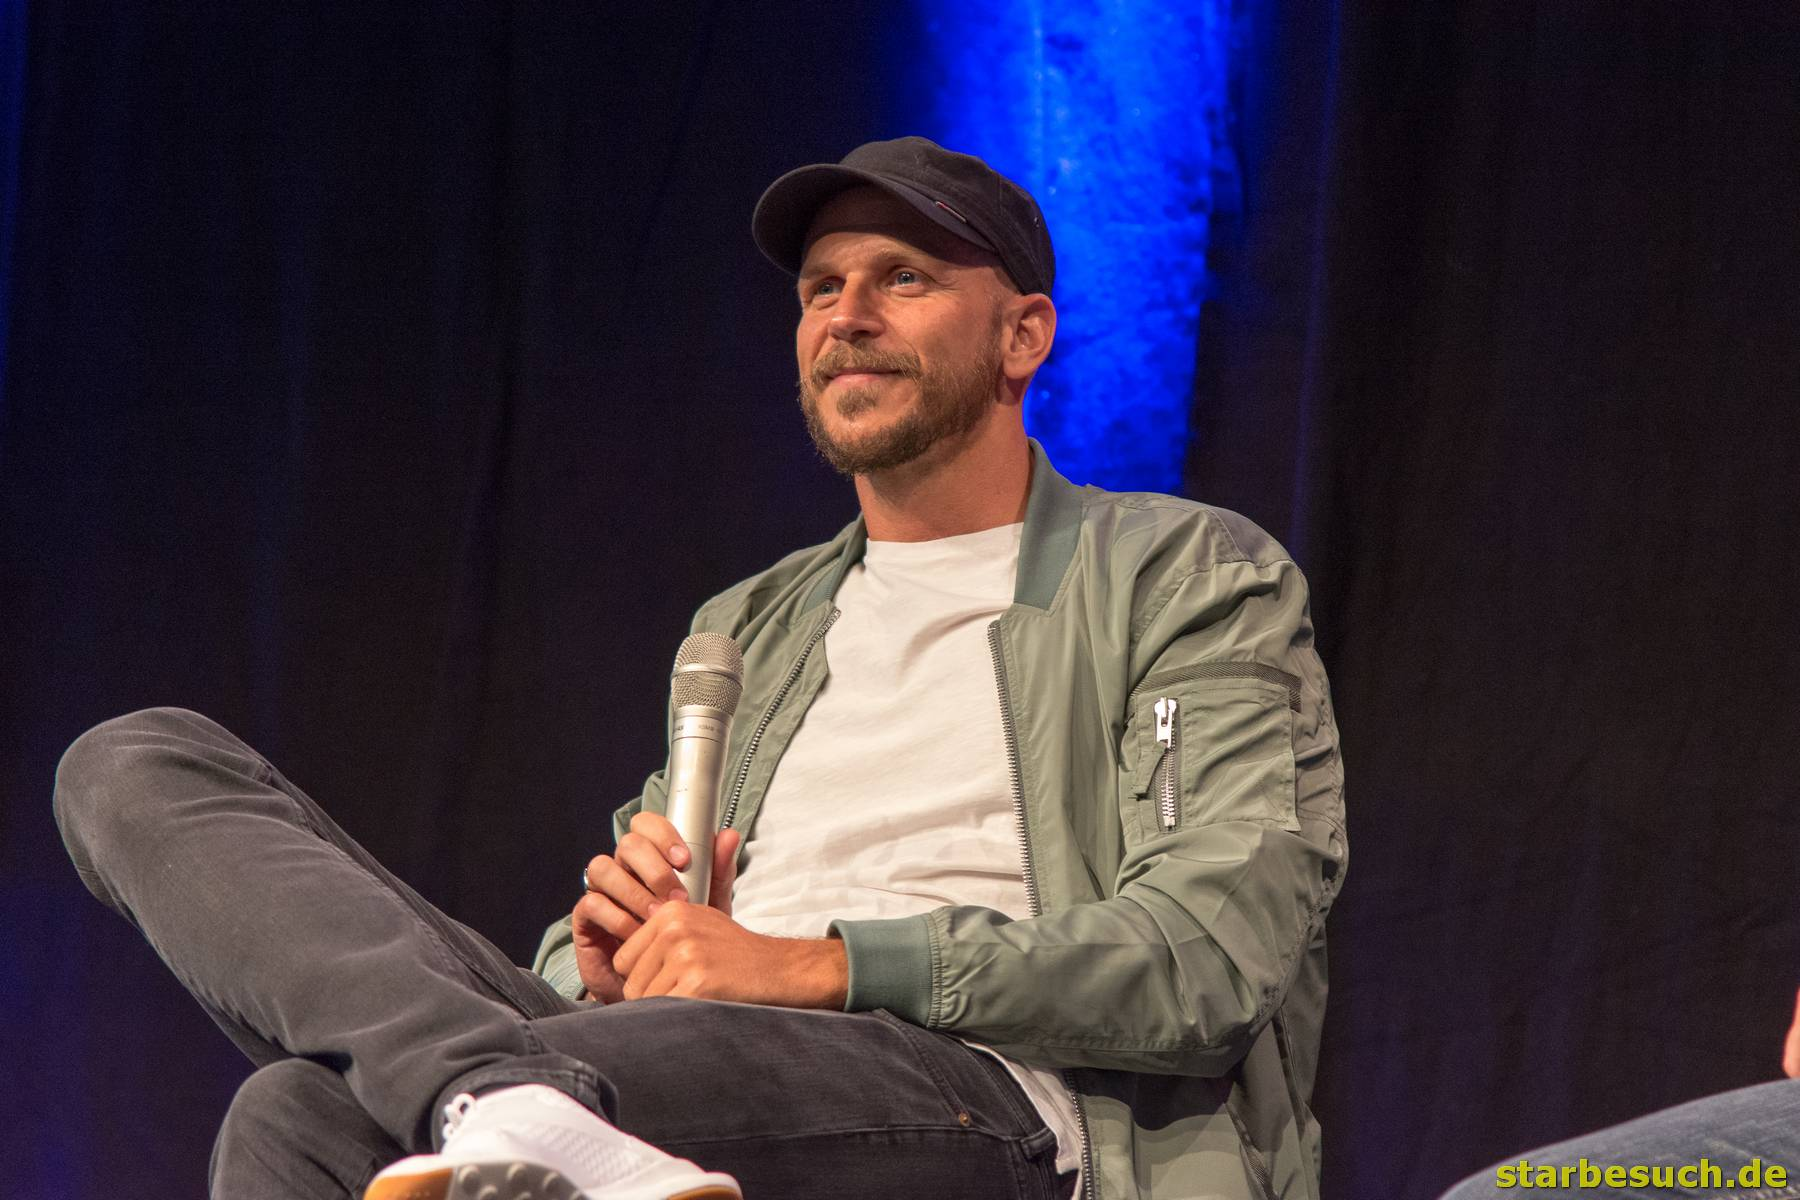 July 1st 2017. Stuttgart, Germany. Swedish actor Gustaf Skarsgard (Vikings) during his panel at Comic Con